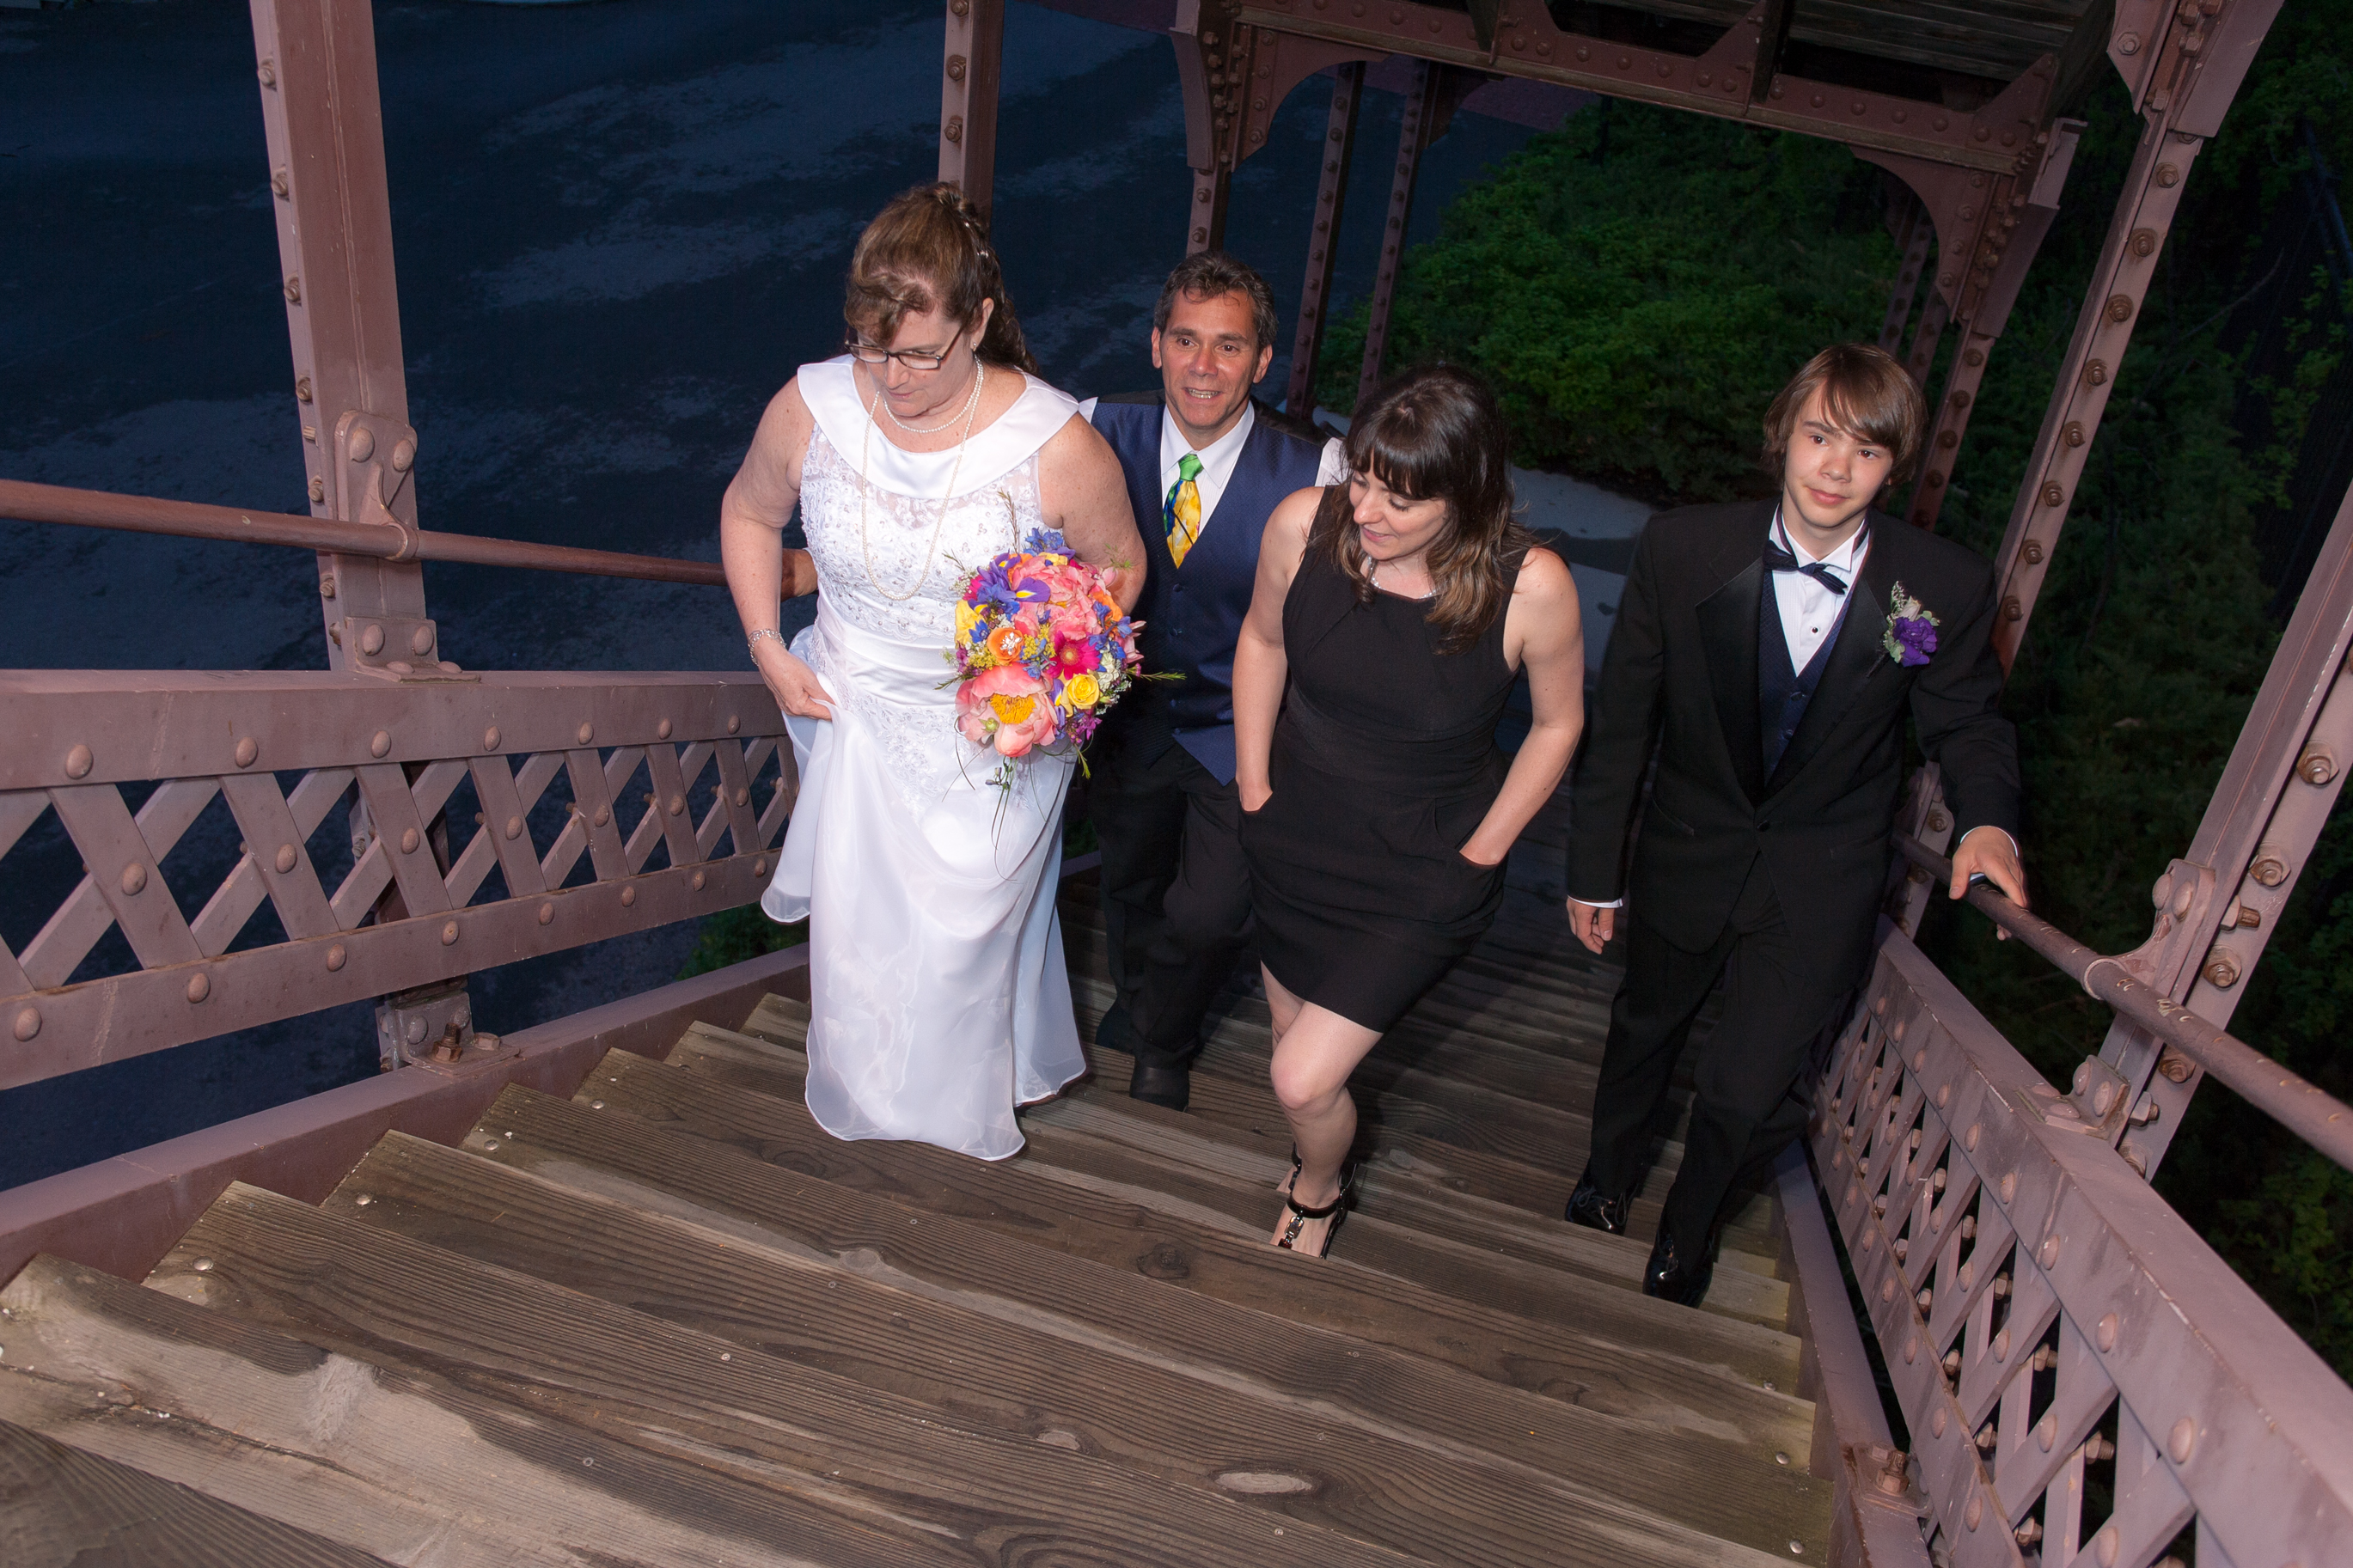 Mandy & Rich's Wedding Planner at the Rhinecliff Hotel